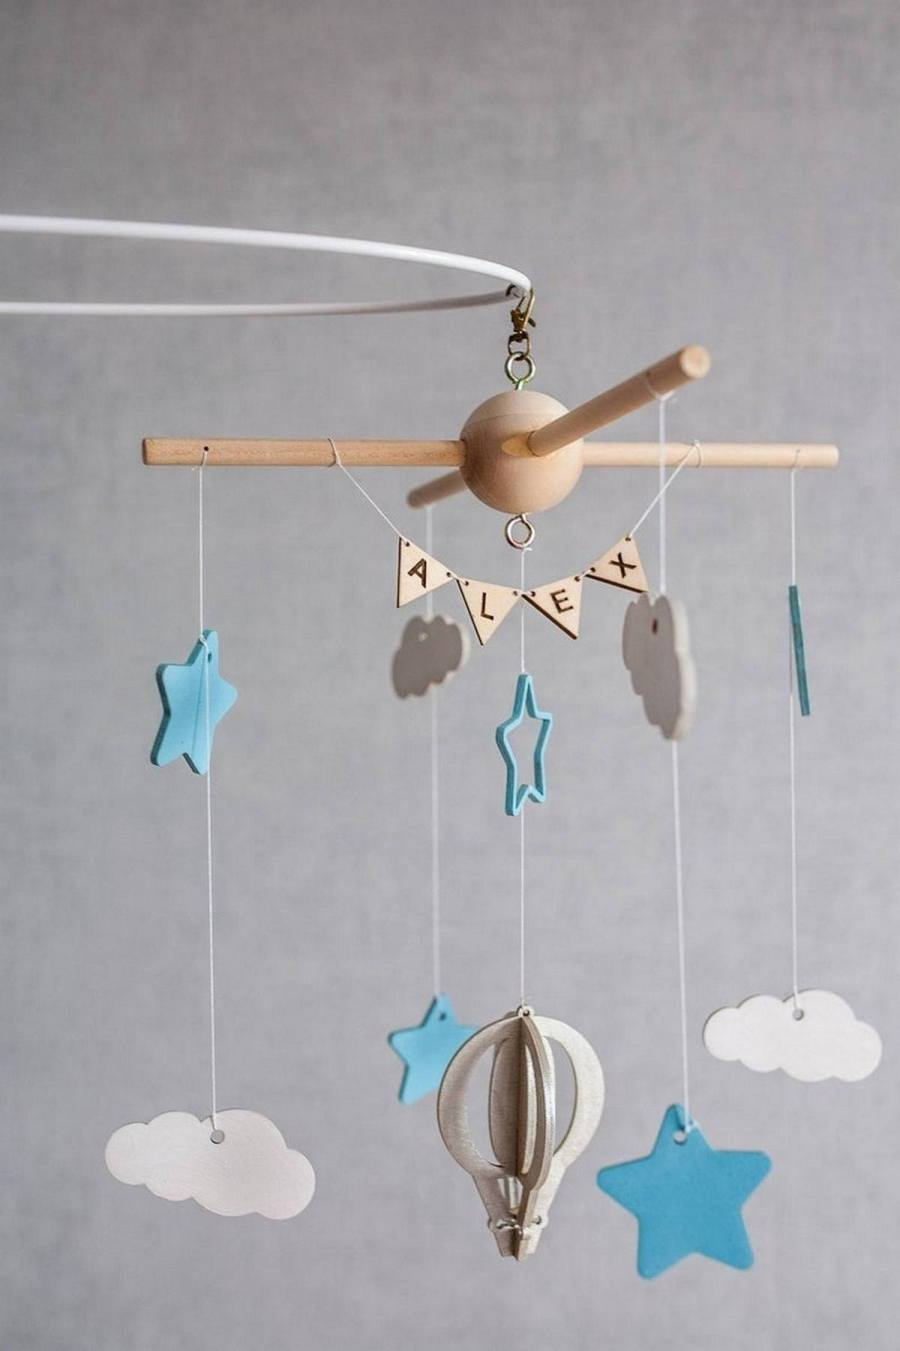 It's a given that baby mobiles are decorations, and their details and colors enrich the lives of parents and infants - and everyone knows that babies can be soothed by slow moving mobiles, and entertained my more active mobiles.